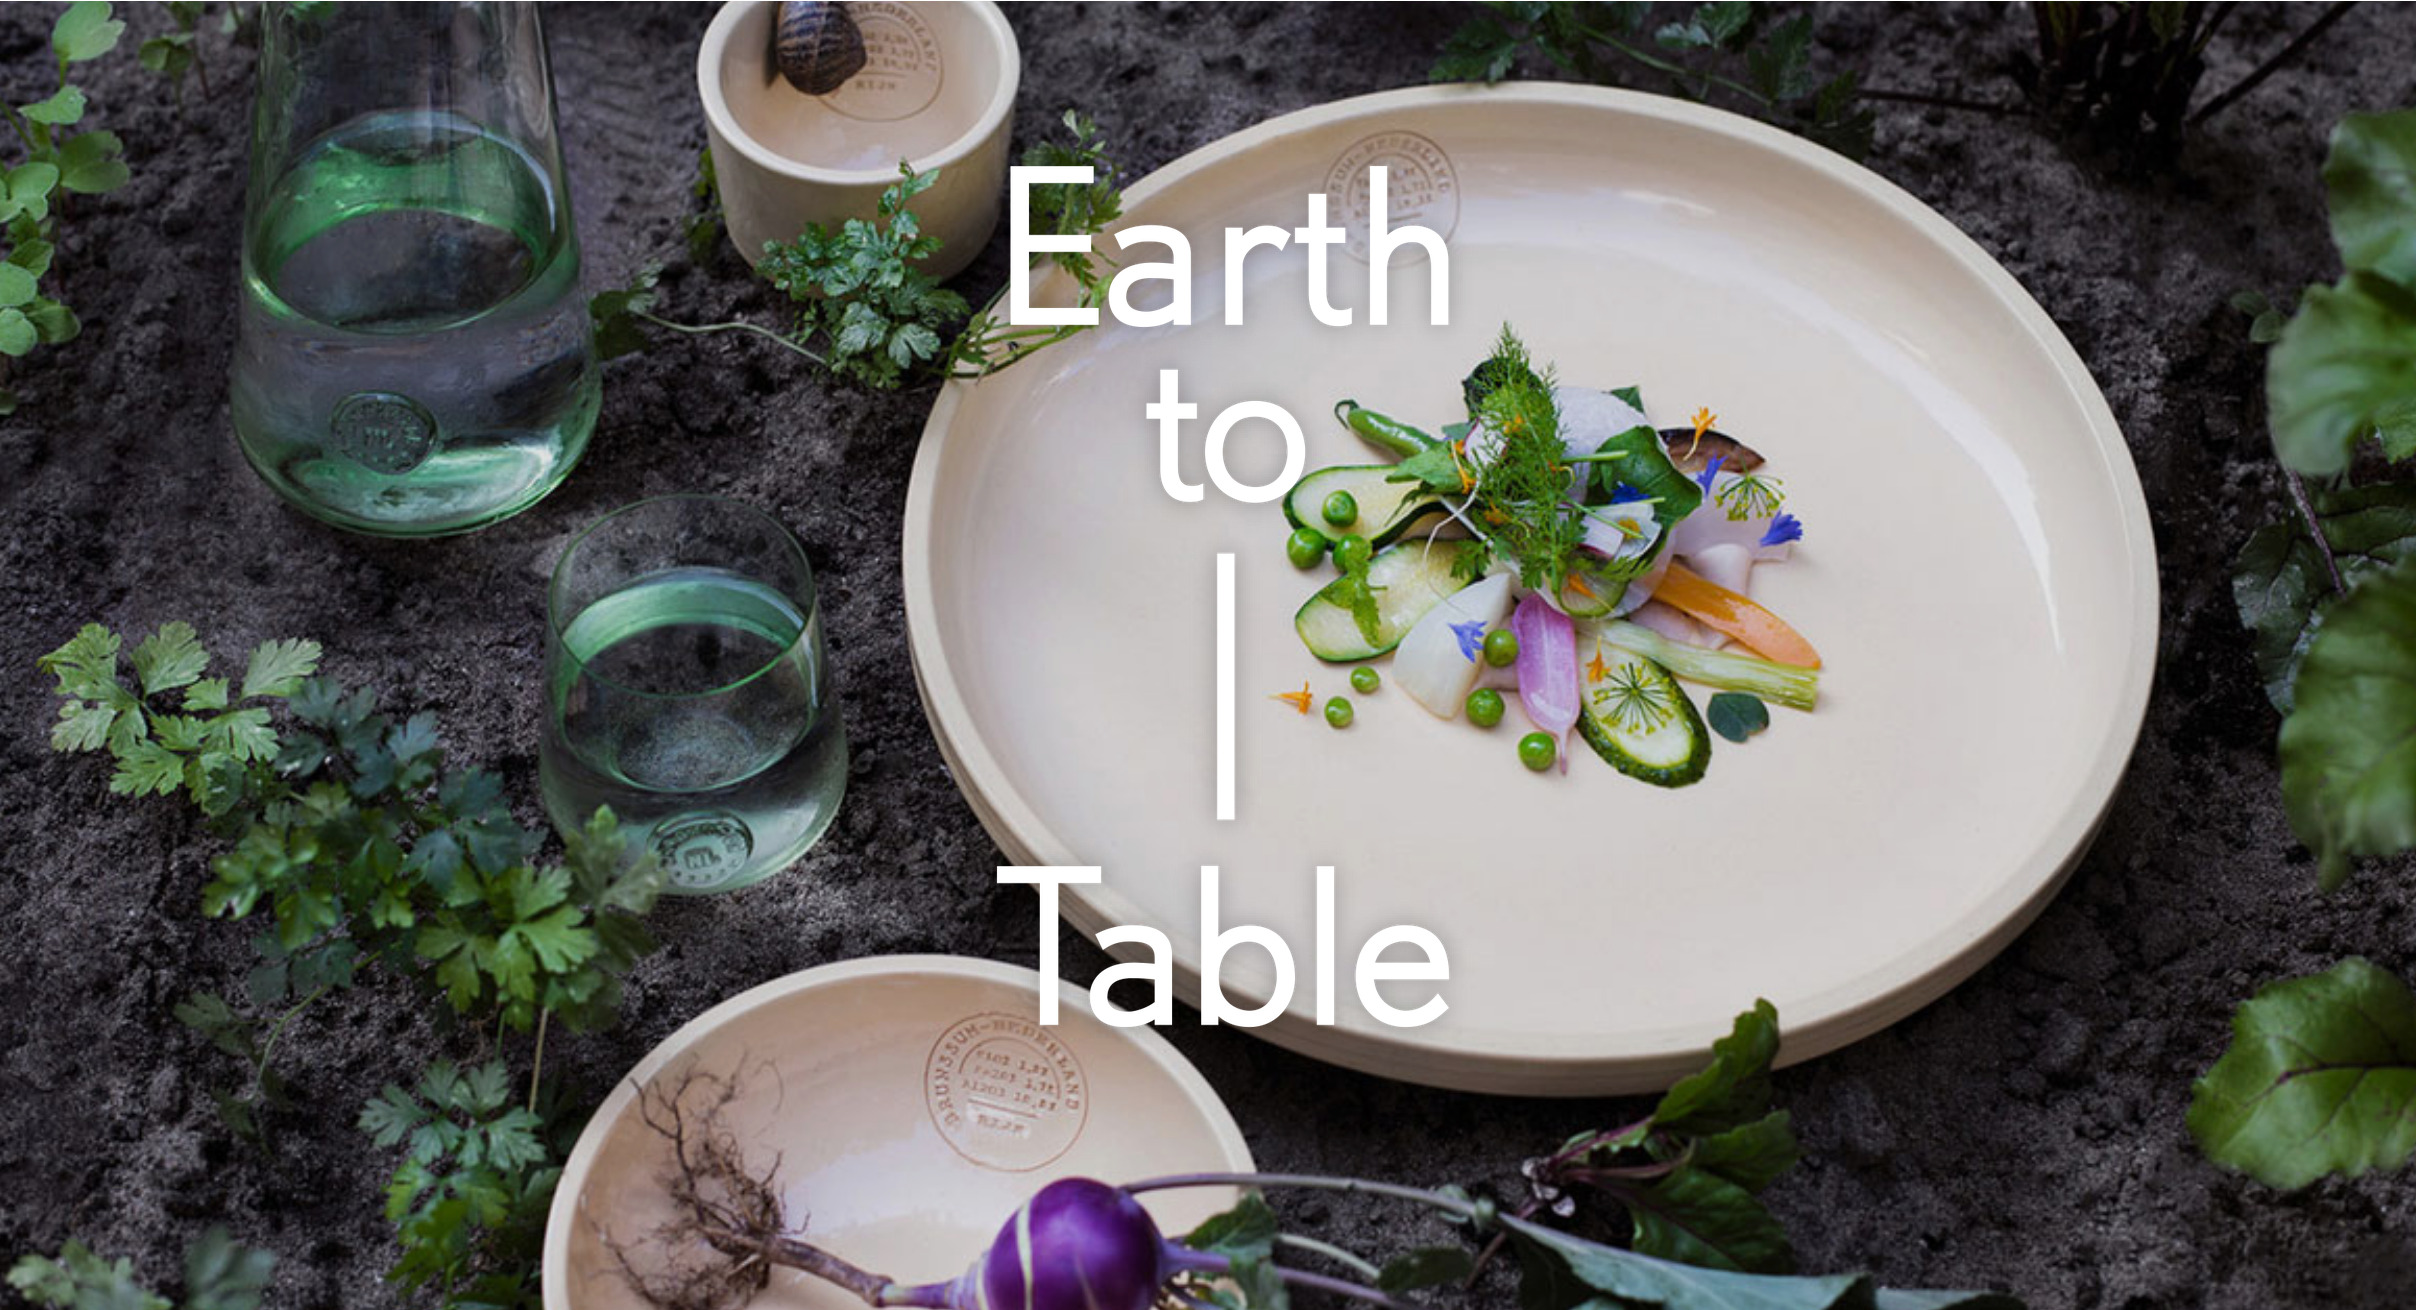 Earth to Table Invitations : Dutch Cuisine asked me to create formal invitations and culinary event titles in English for a series of special dining events during Dutch Design Week 2016. The series was called  Earth to Table  and occurred at various locations in Eindhoven, the Netherlands. The Dutch content on the site is a translation of my original English content. Invitations were also sent out by email. This was part of a larger project that included the creation and curation of content for billboards, press releases, media sources, and the Dutch Design Week website. Parties involved included Mattmo Creative in Amsterdam, Dutch Cuisine, Onkruidenier, Atelier NL, and (H)eerlijk Anders.